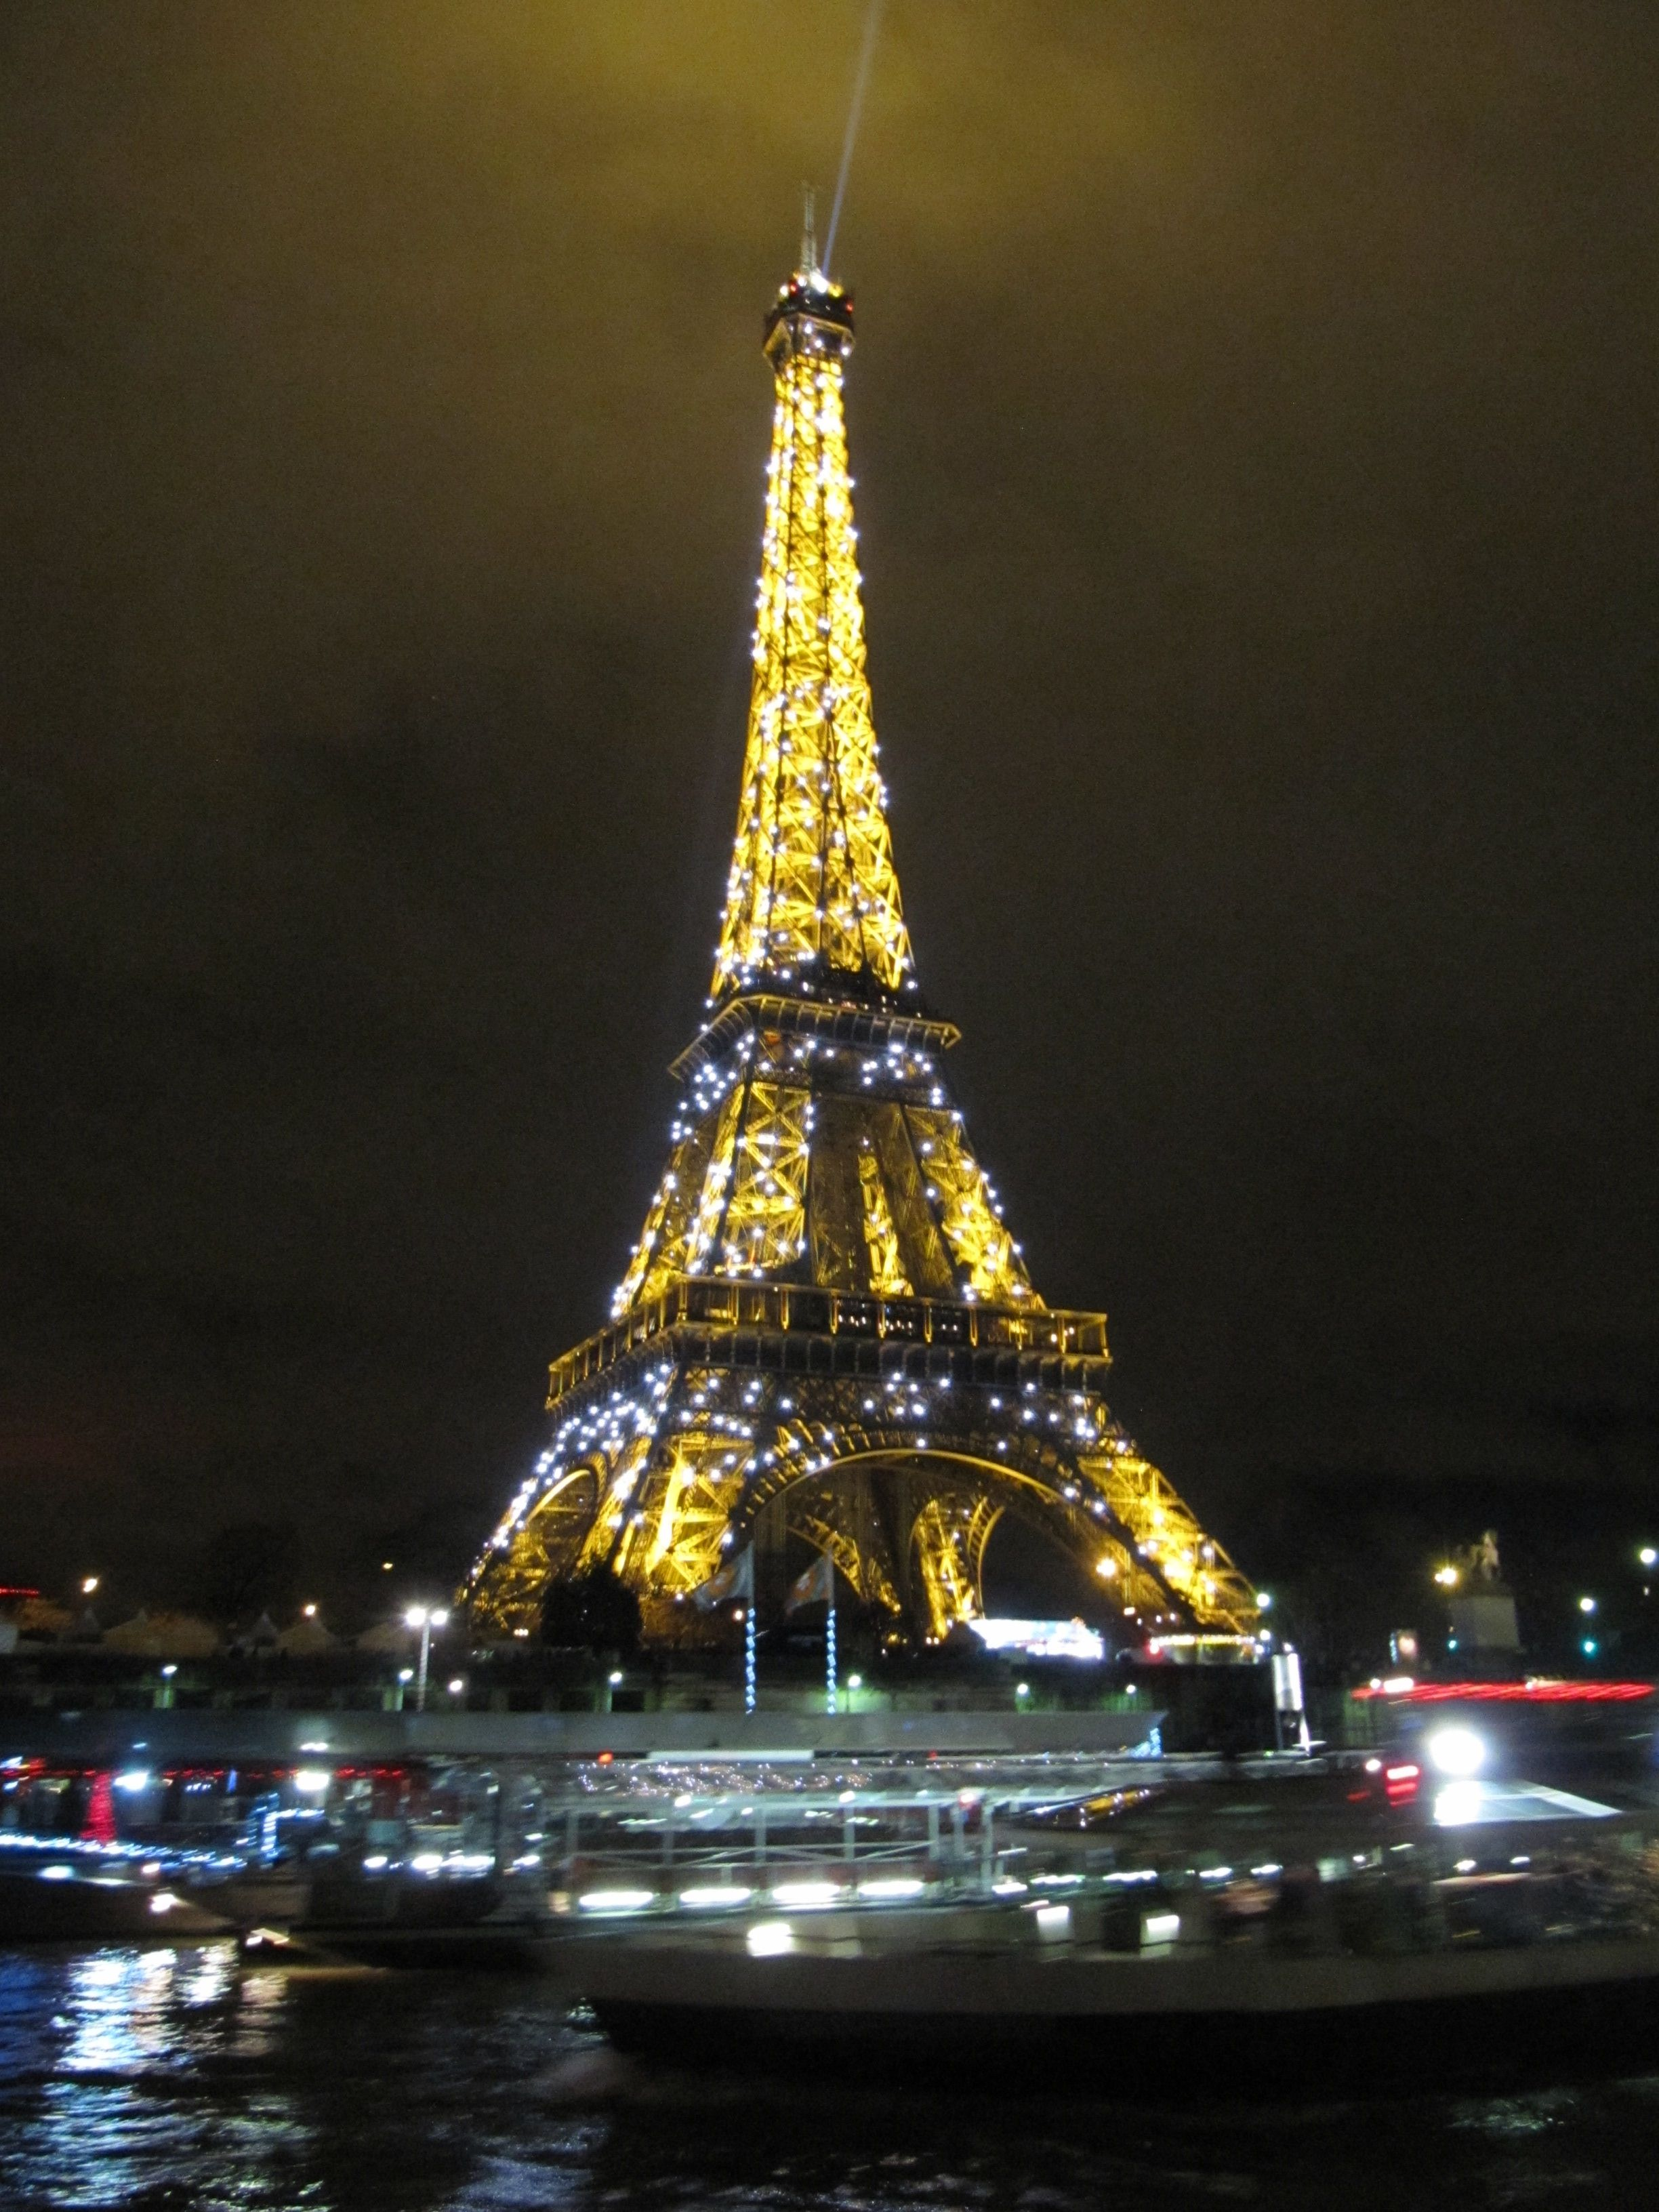 The Eiffel Tower shining on New Year's Eve